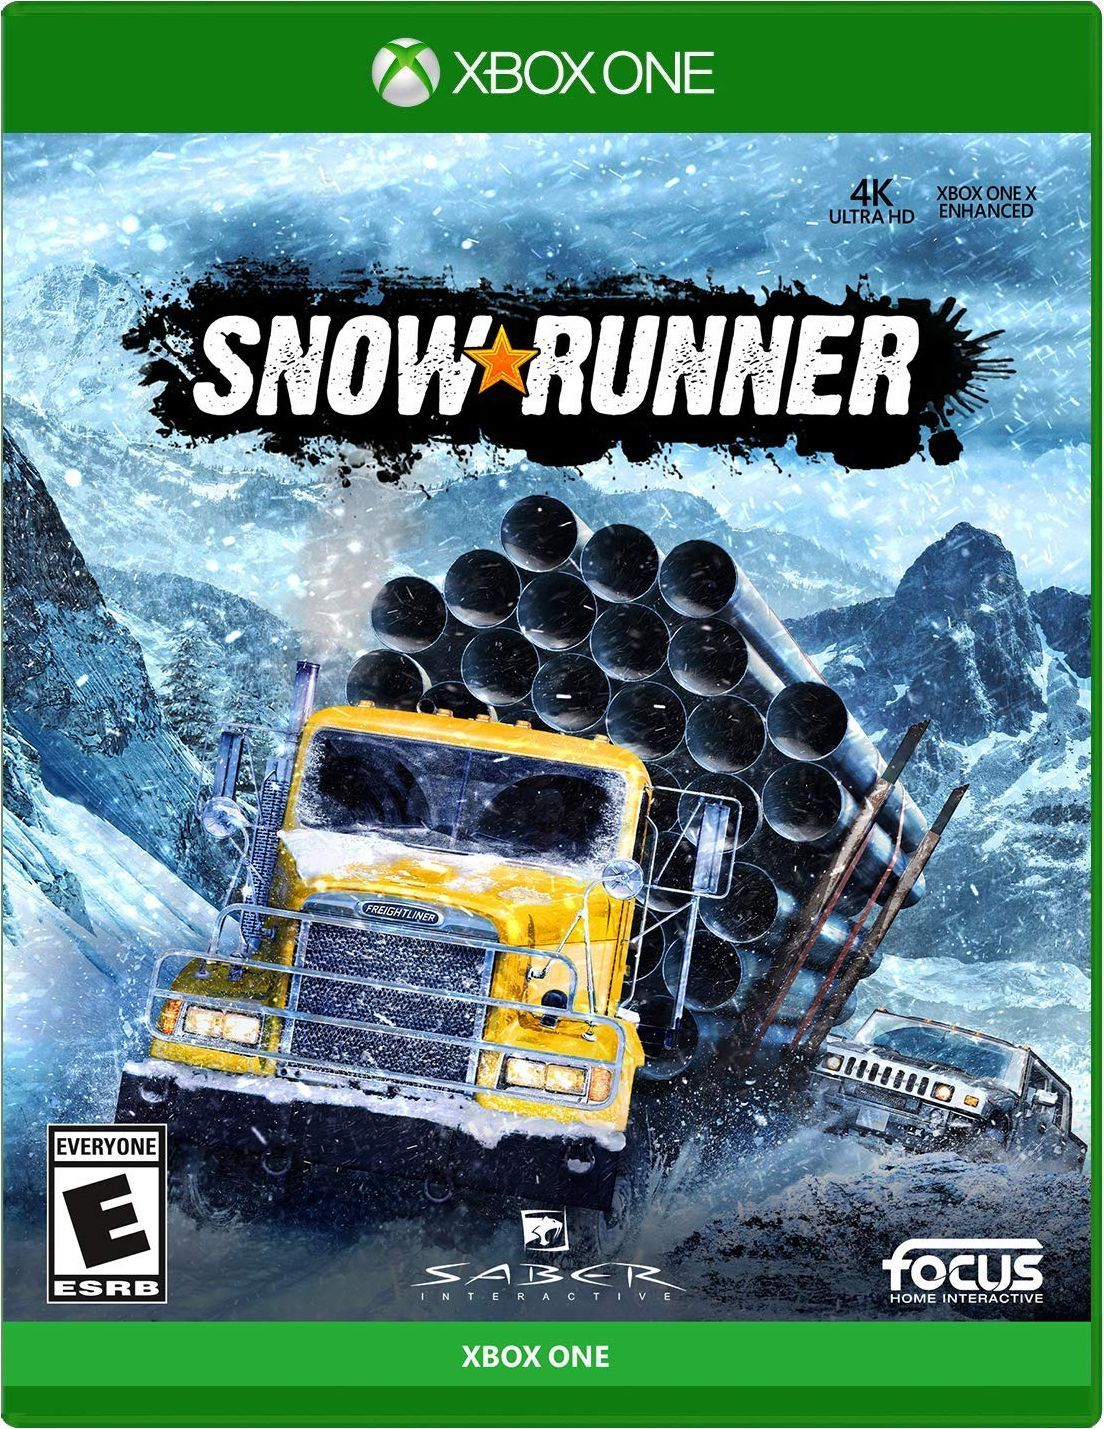 Snowrunner in 2020 Xbox one, Xbox one games, Xbox